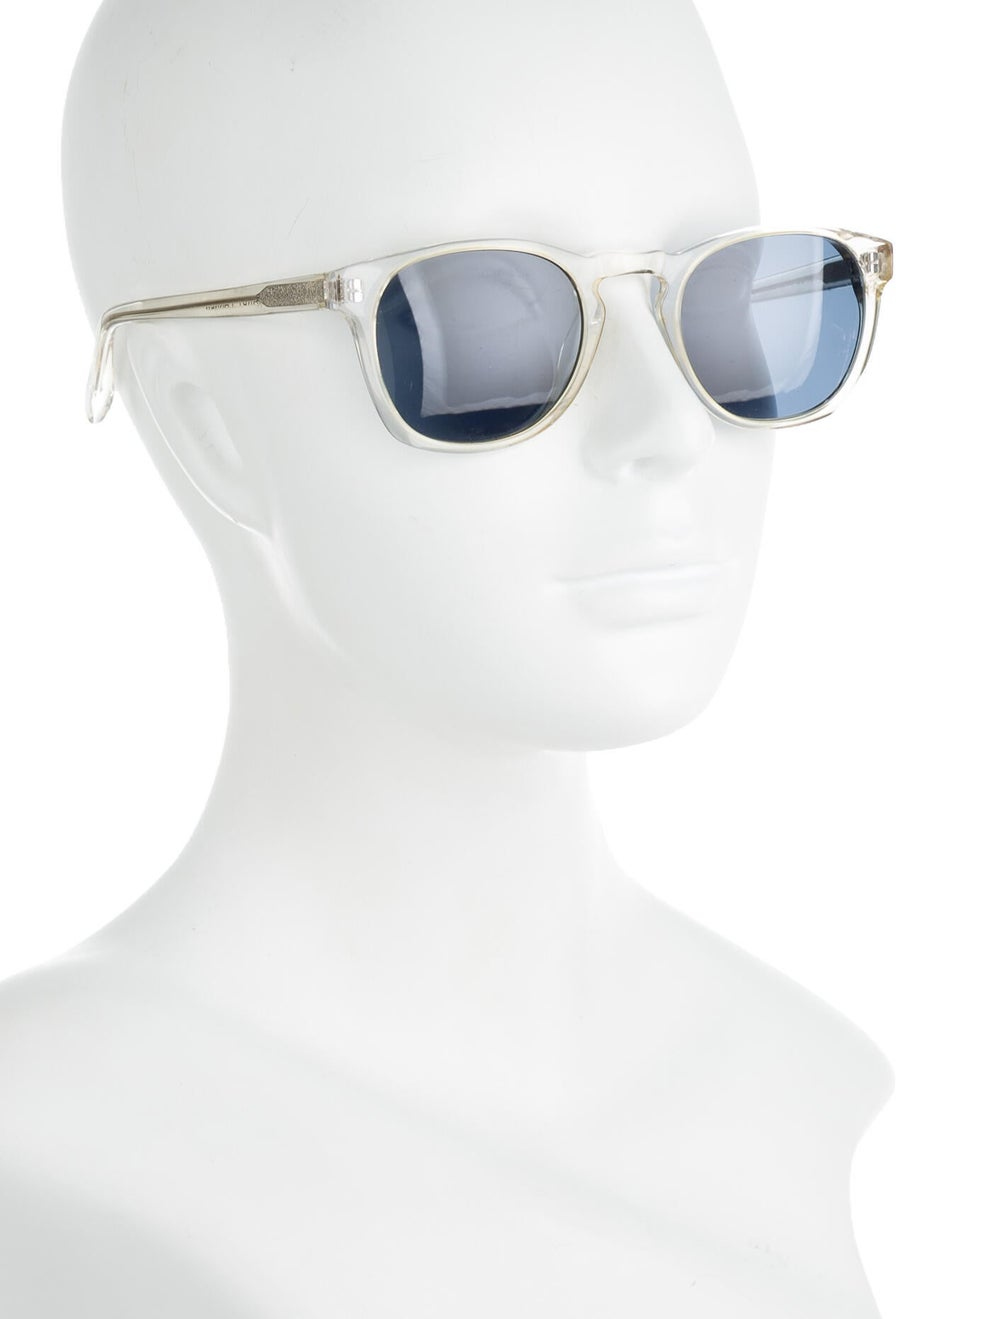 Warby Parker Topper Sunglasses Clear - image 4